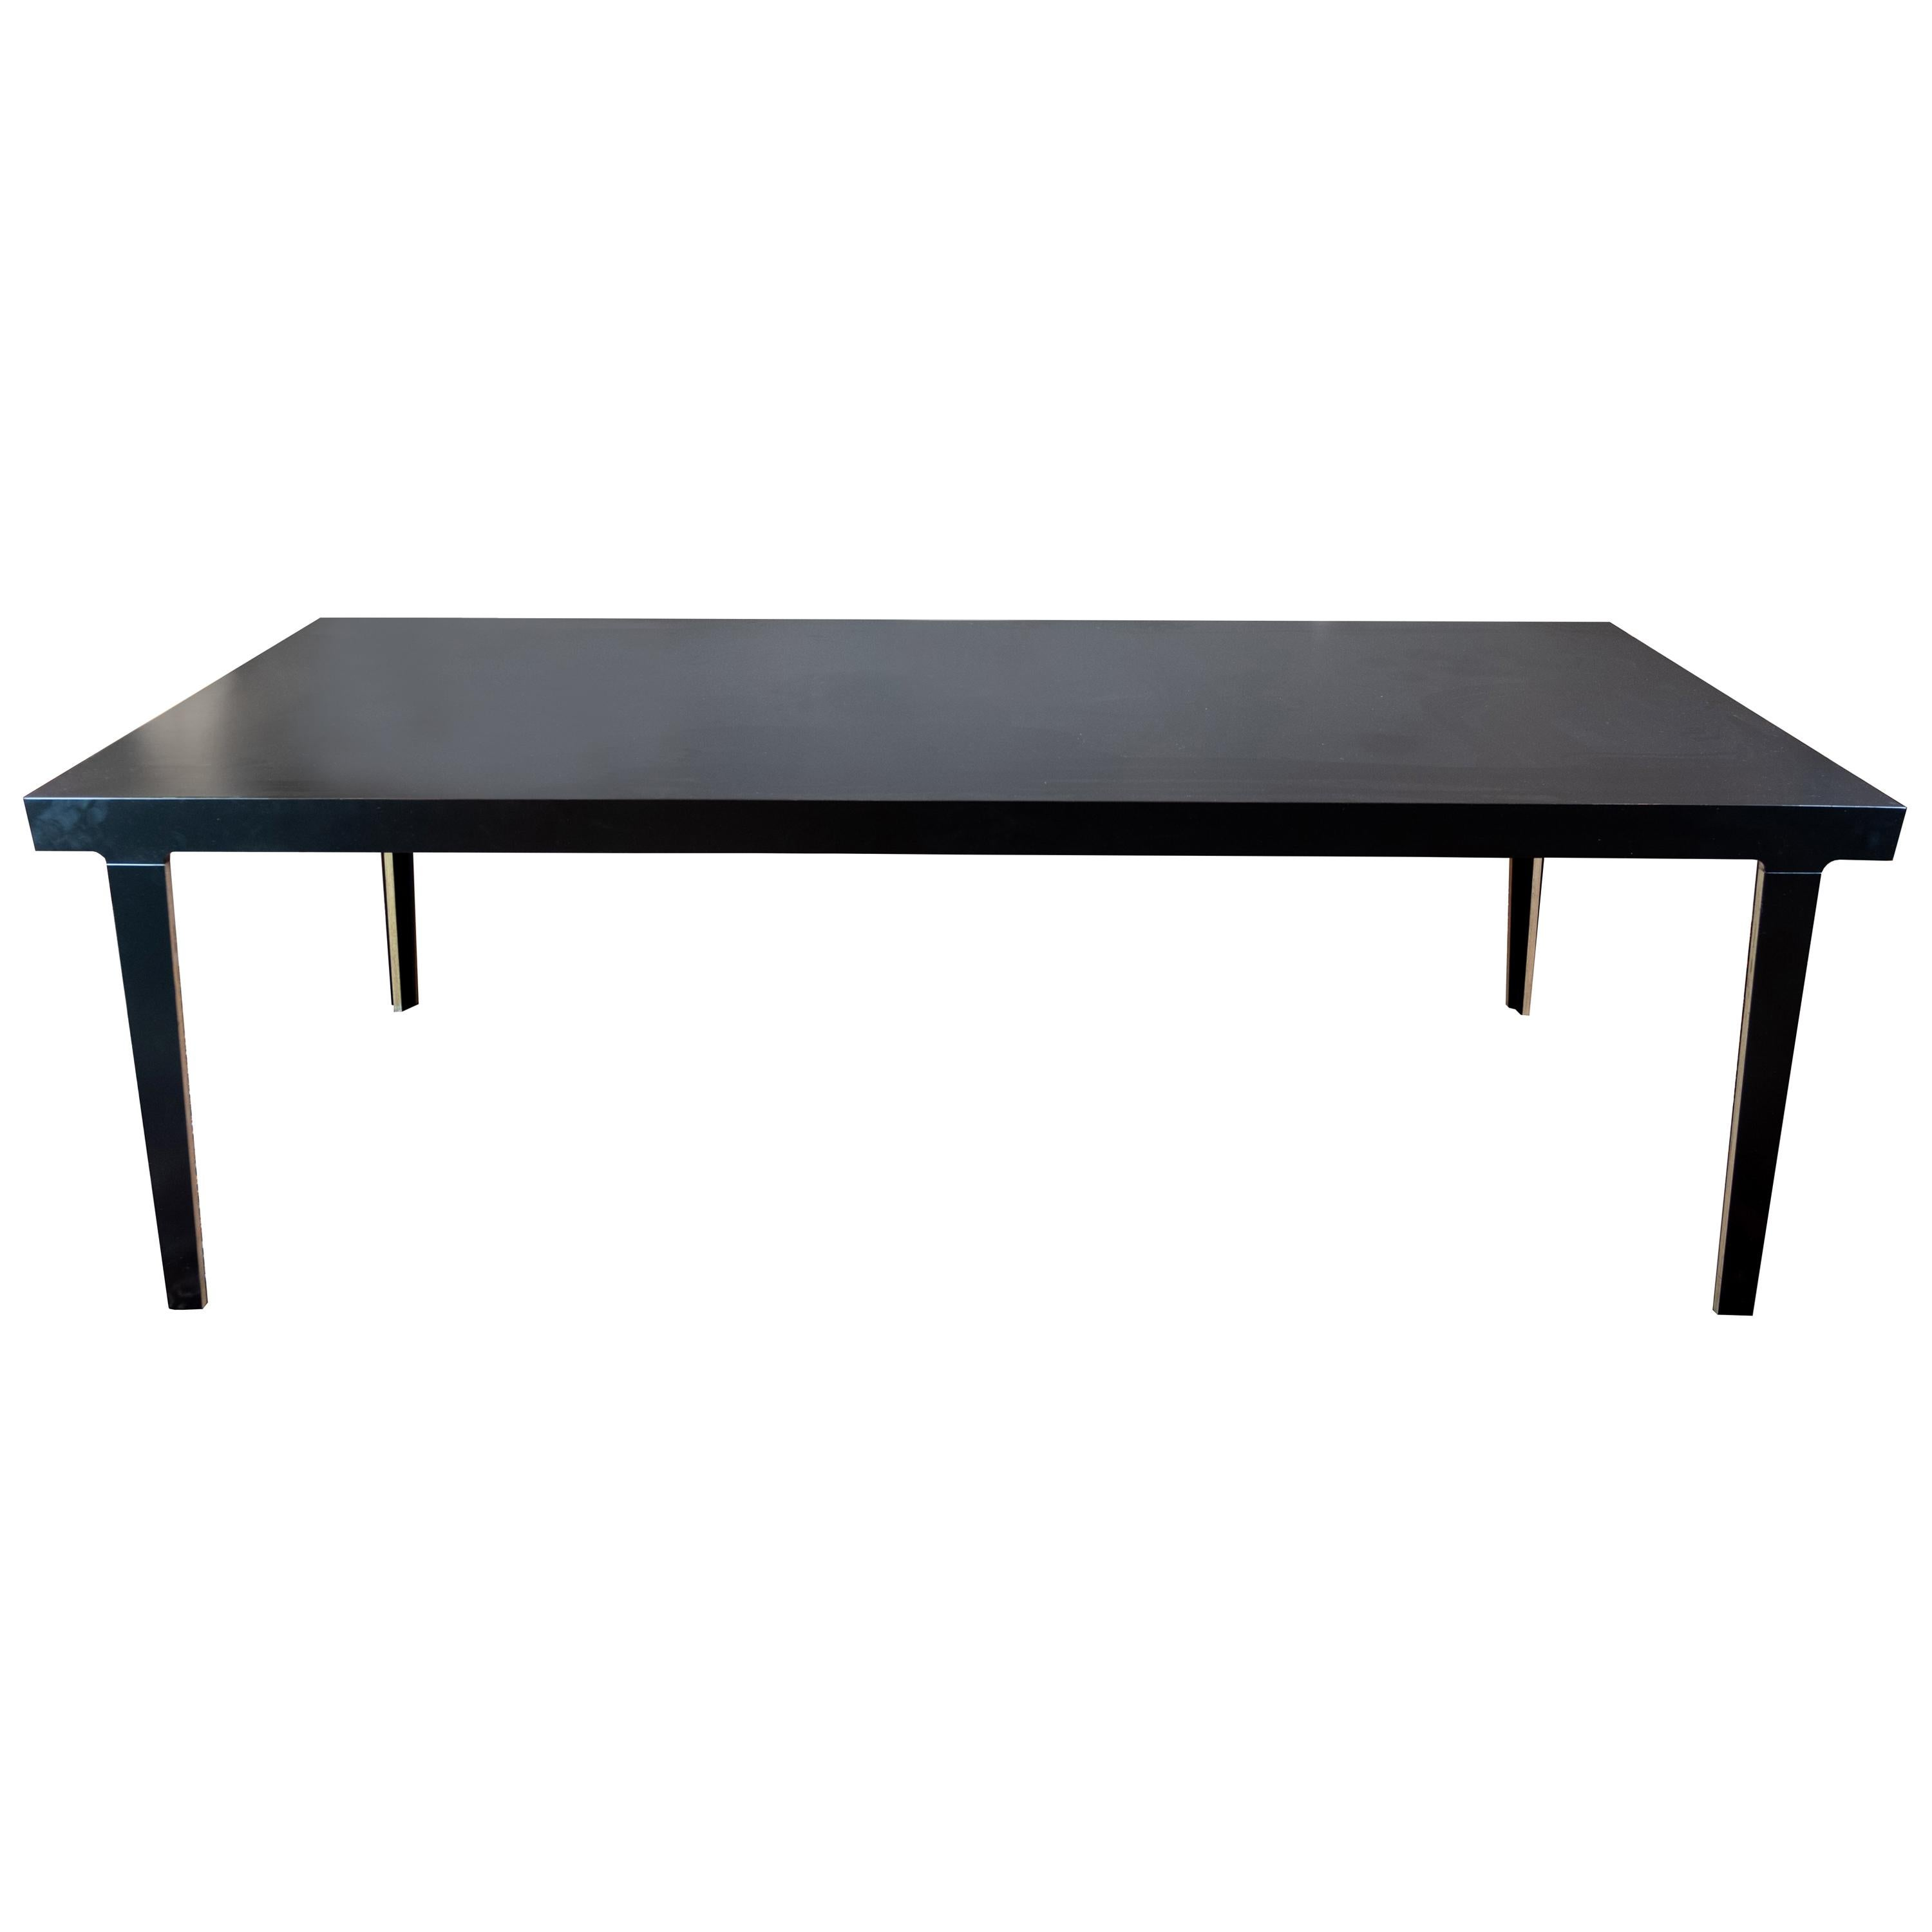 Dining Table, Model M5, Designed by Frank in 2006 by Established & Sons